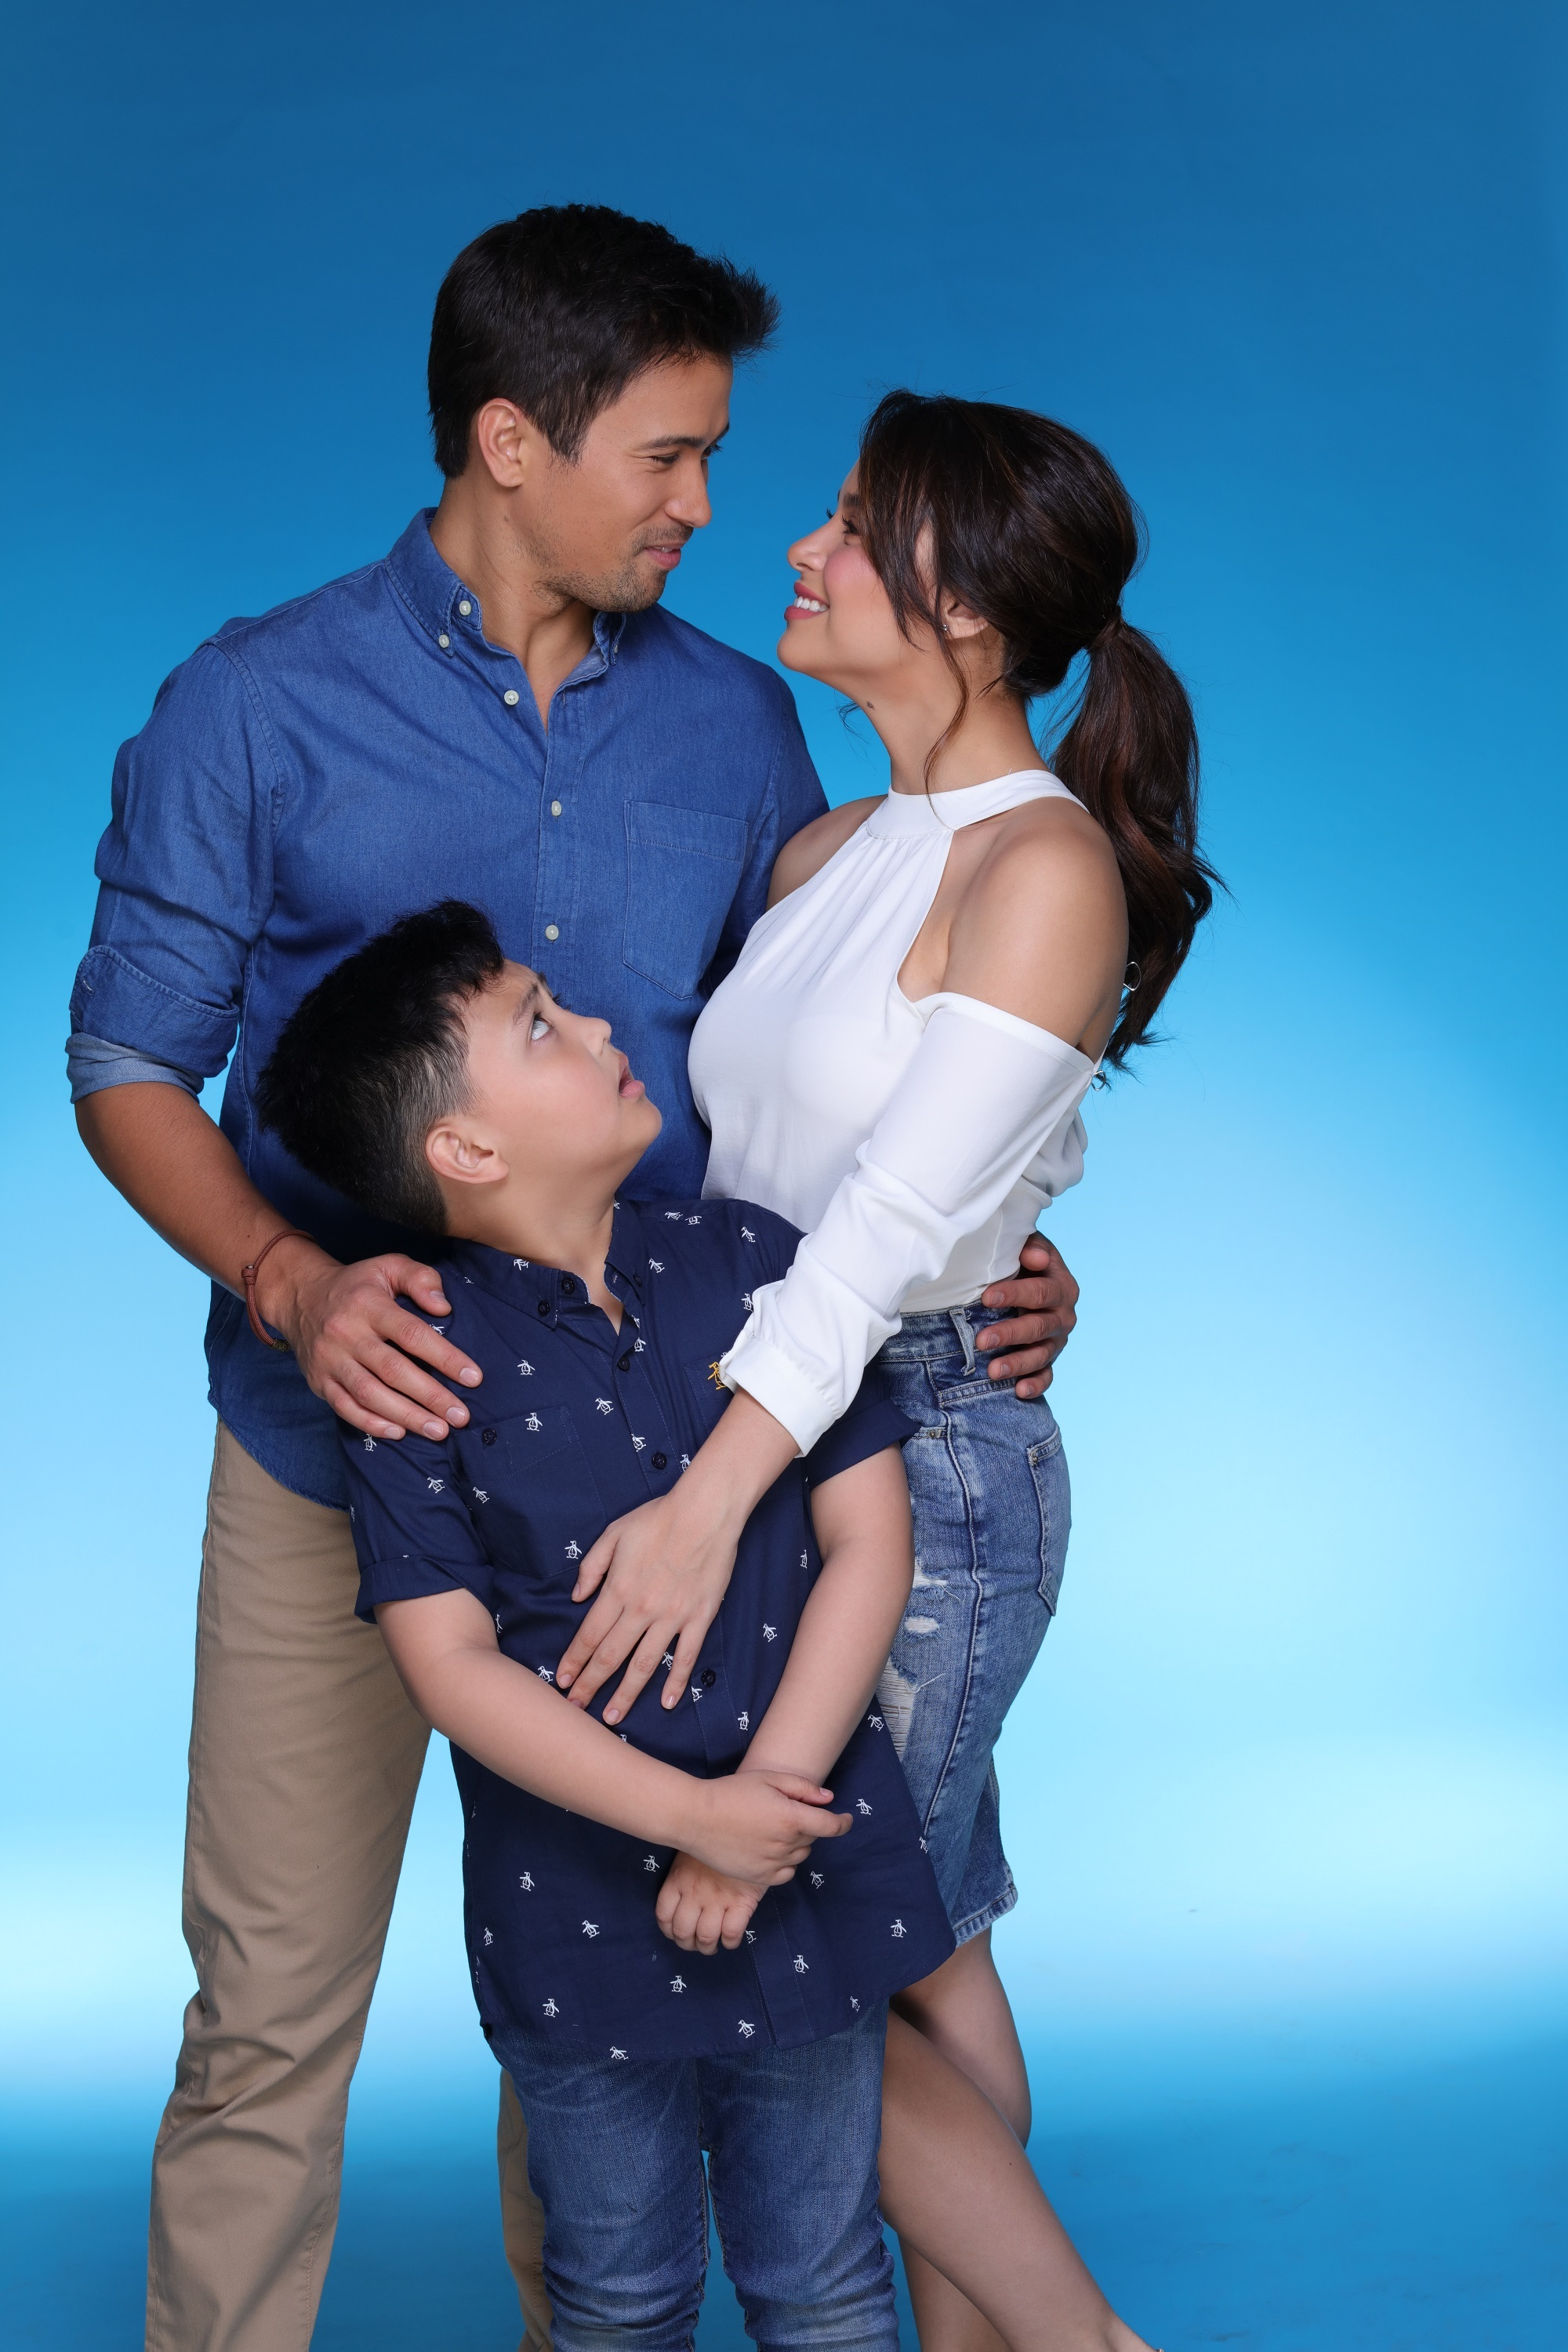 MAKE IT WORK. Trina finds herself in an unusual position of having a boyfriend with a son. Photo courtesy of Viva